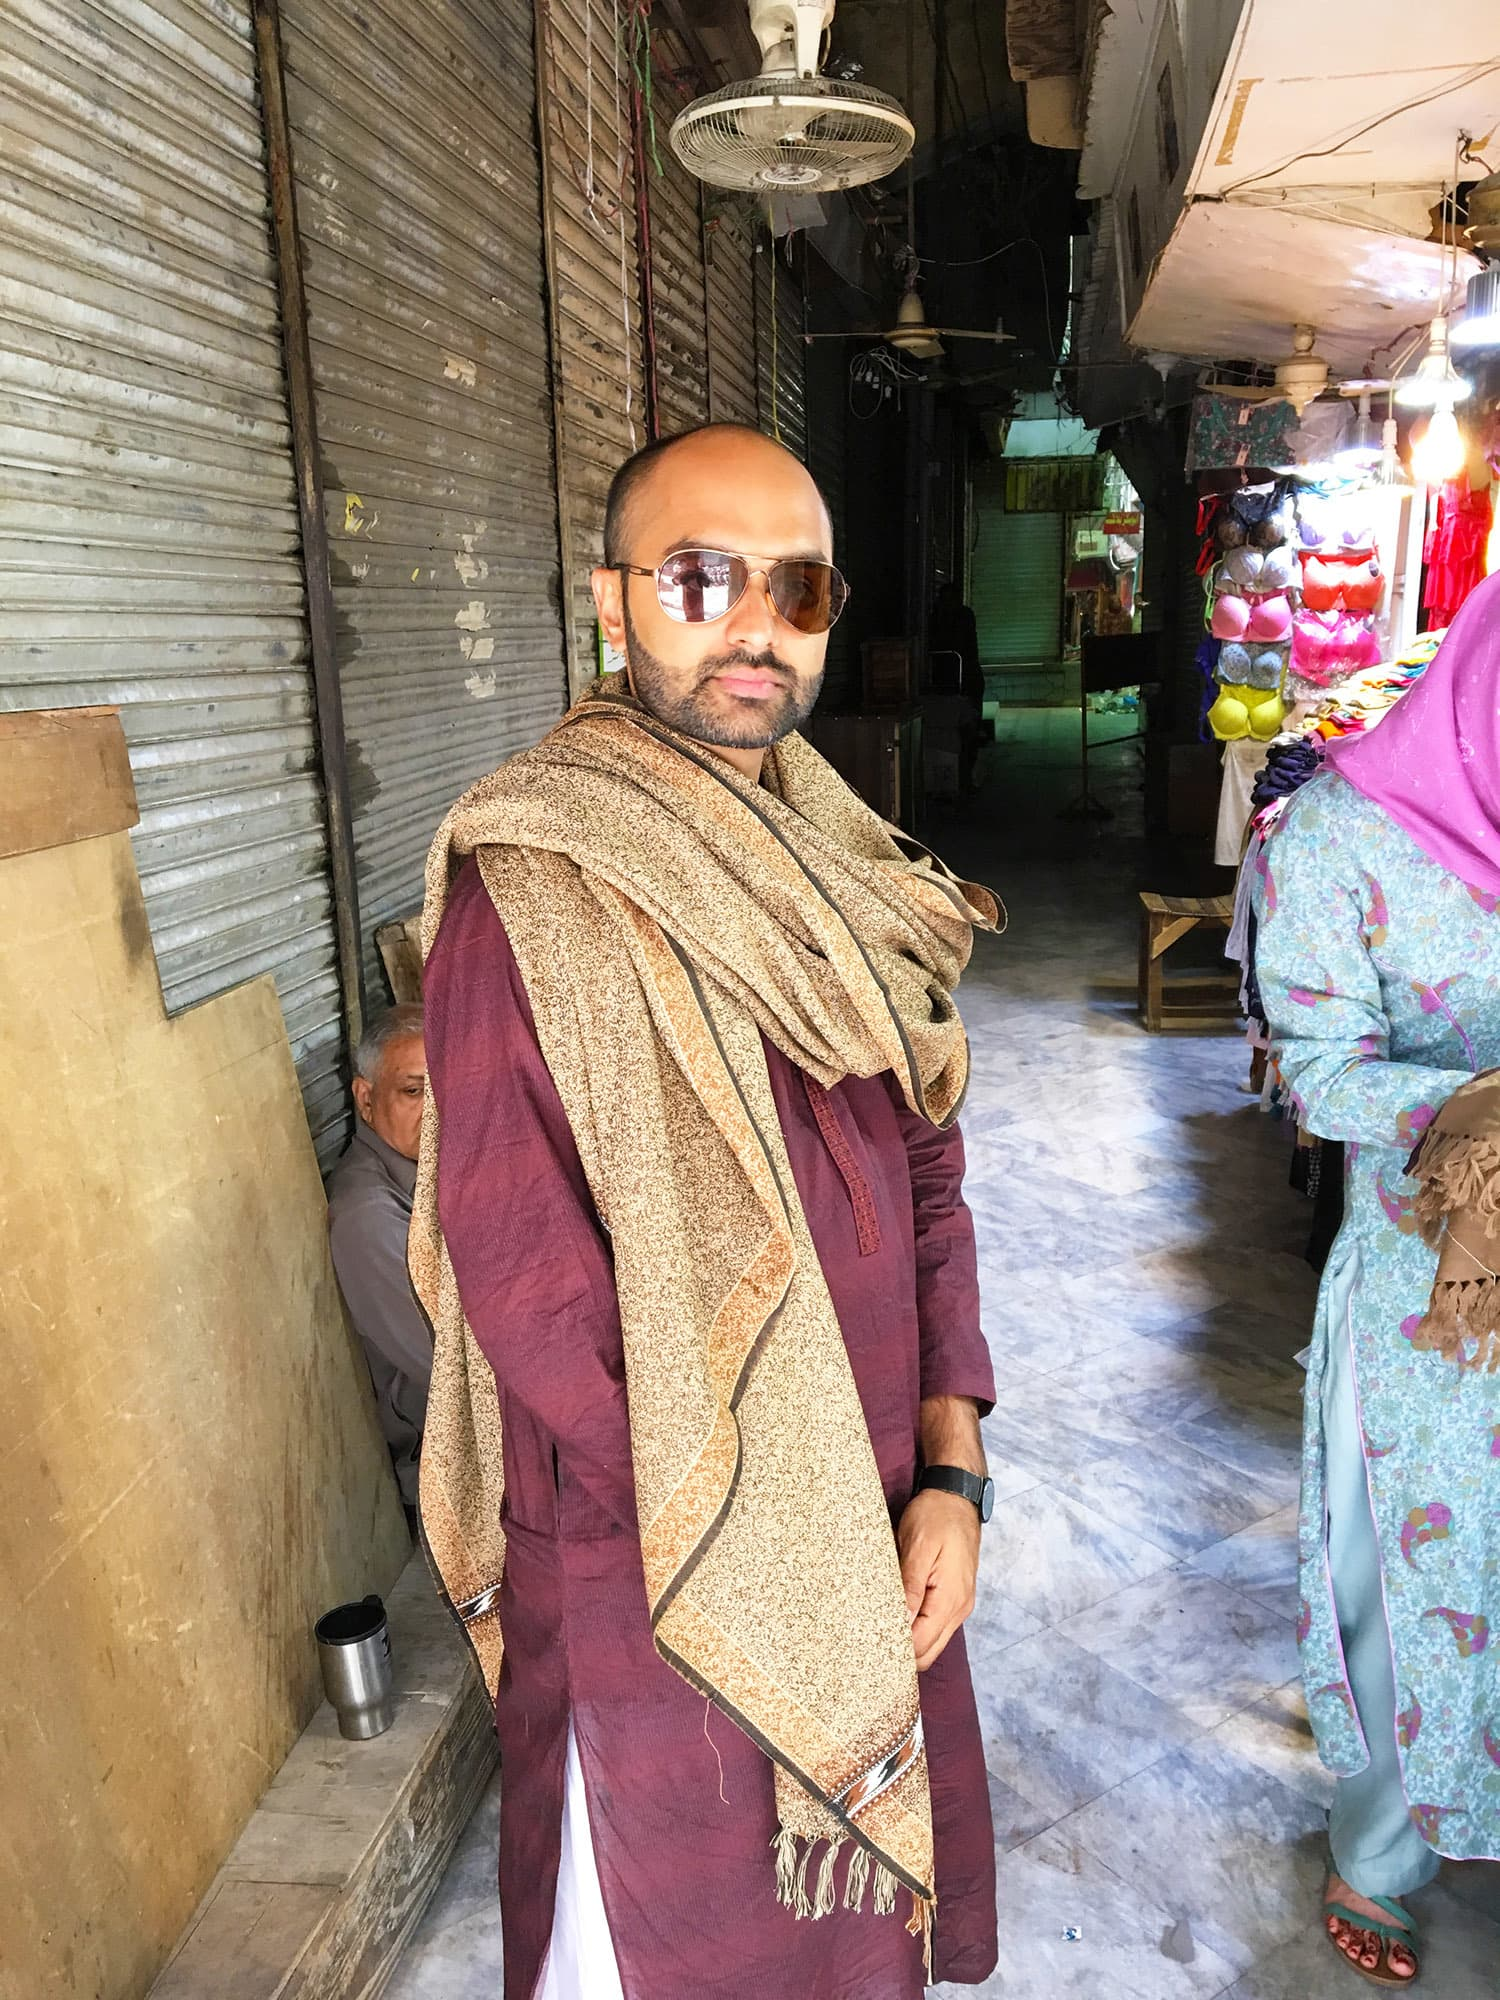 Donning one of the shawls from an amazing collection available at Anarkali Bazaar.